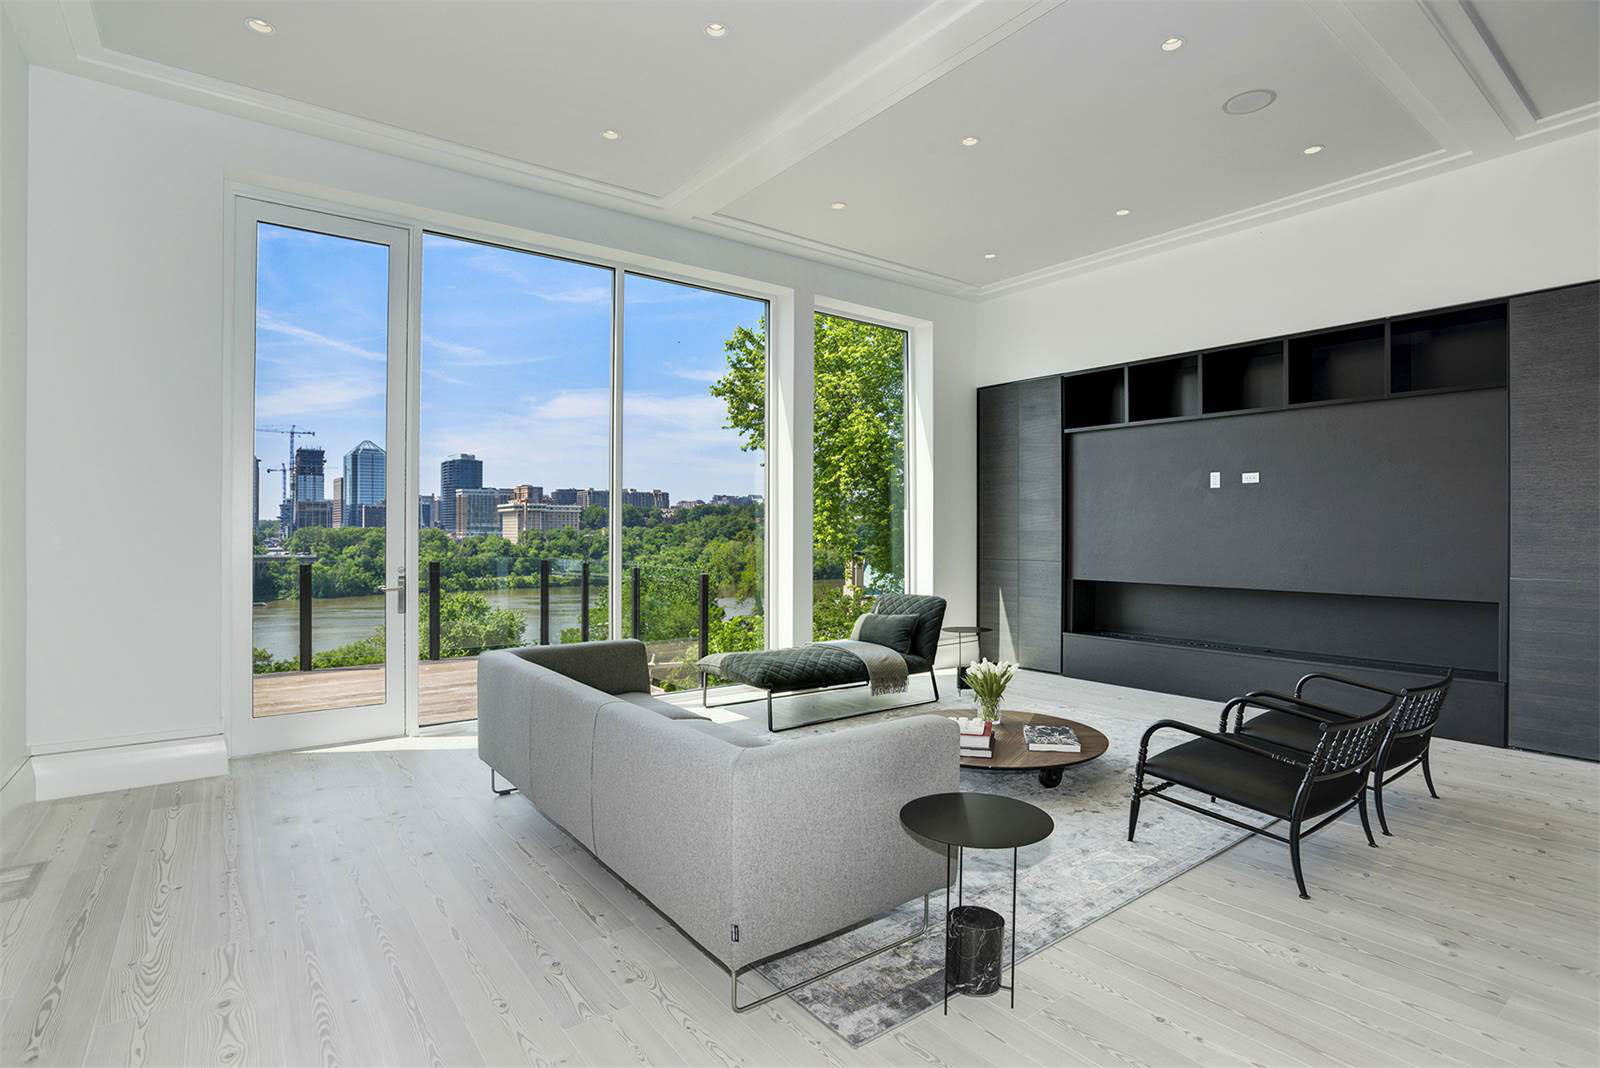 Federal Style Georgetown Rowhouse With Views Of The